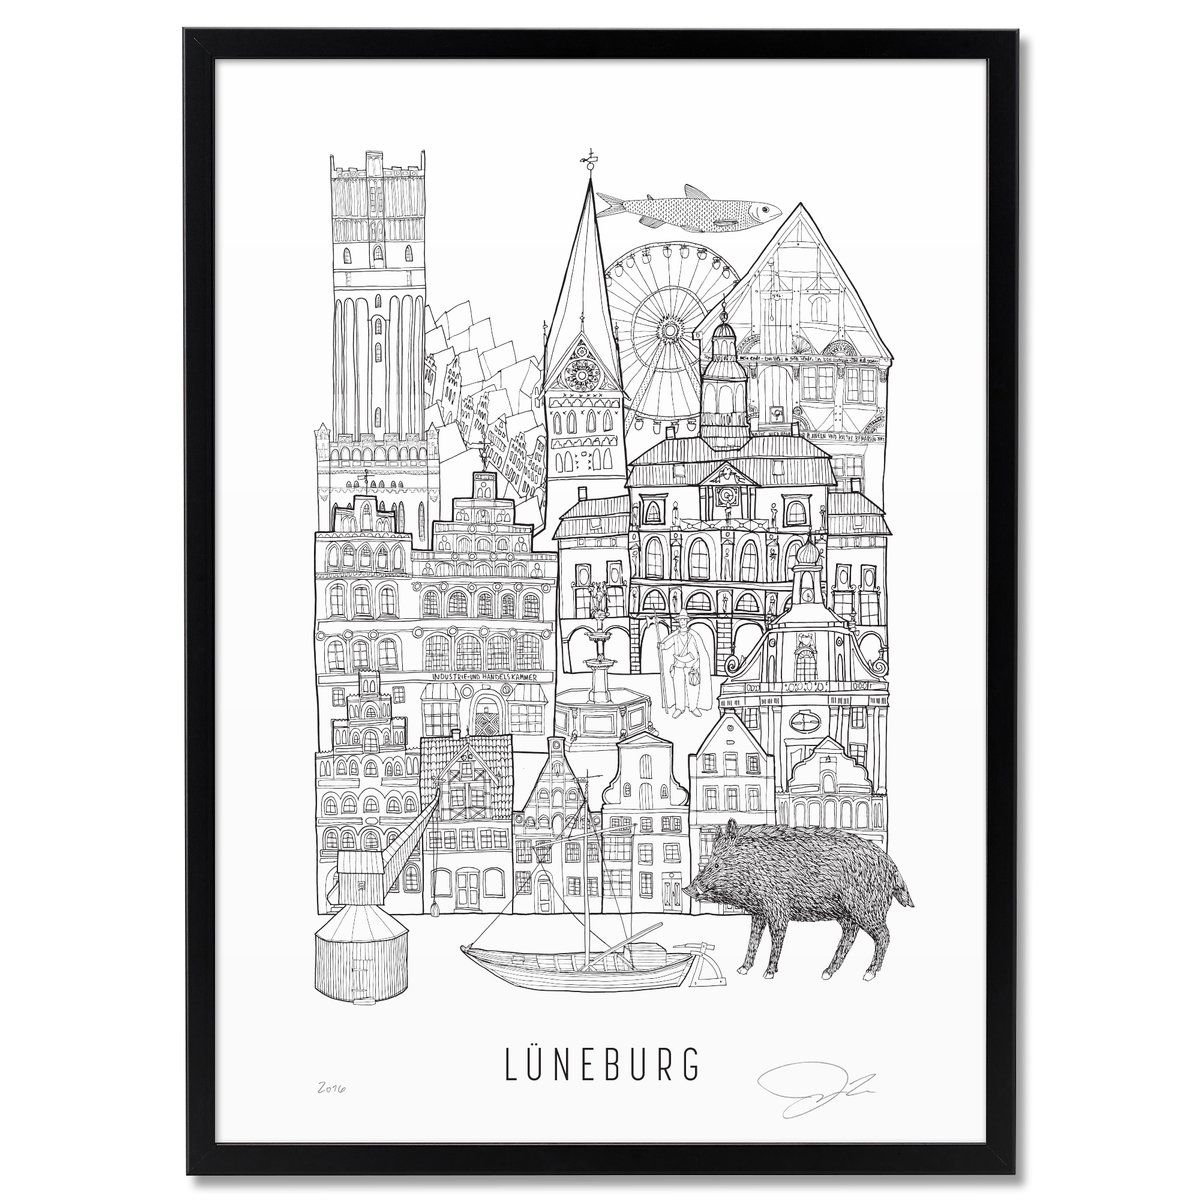 Illustration by Justin Landon Signed and Numbered SIZES: A3: 29,7 x 42 cm Price: 25.00 Euros A2: 42 x 59,4cm Price: 50.00 Euros Tags: Illustration,...